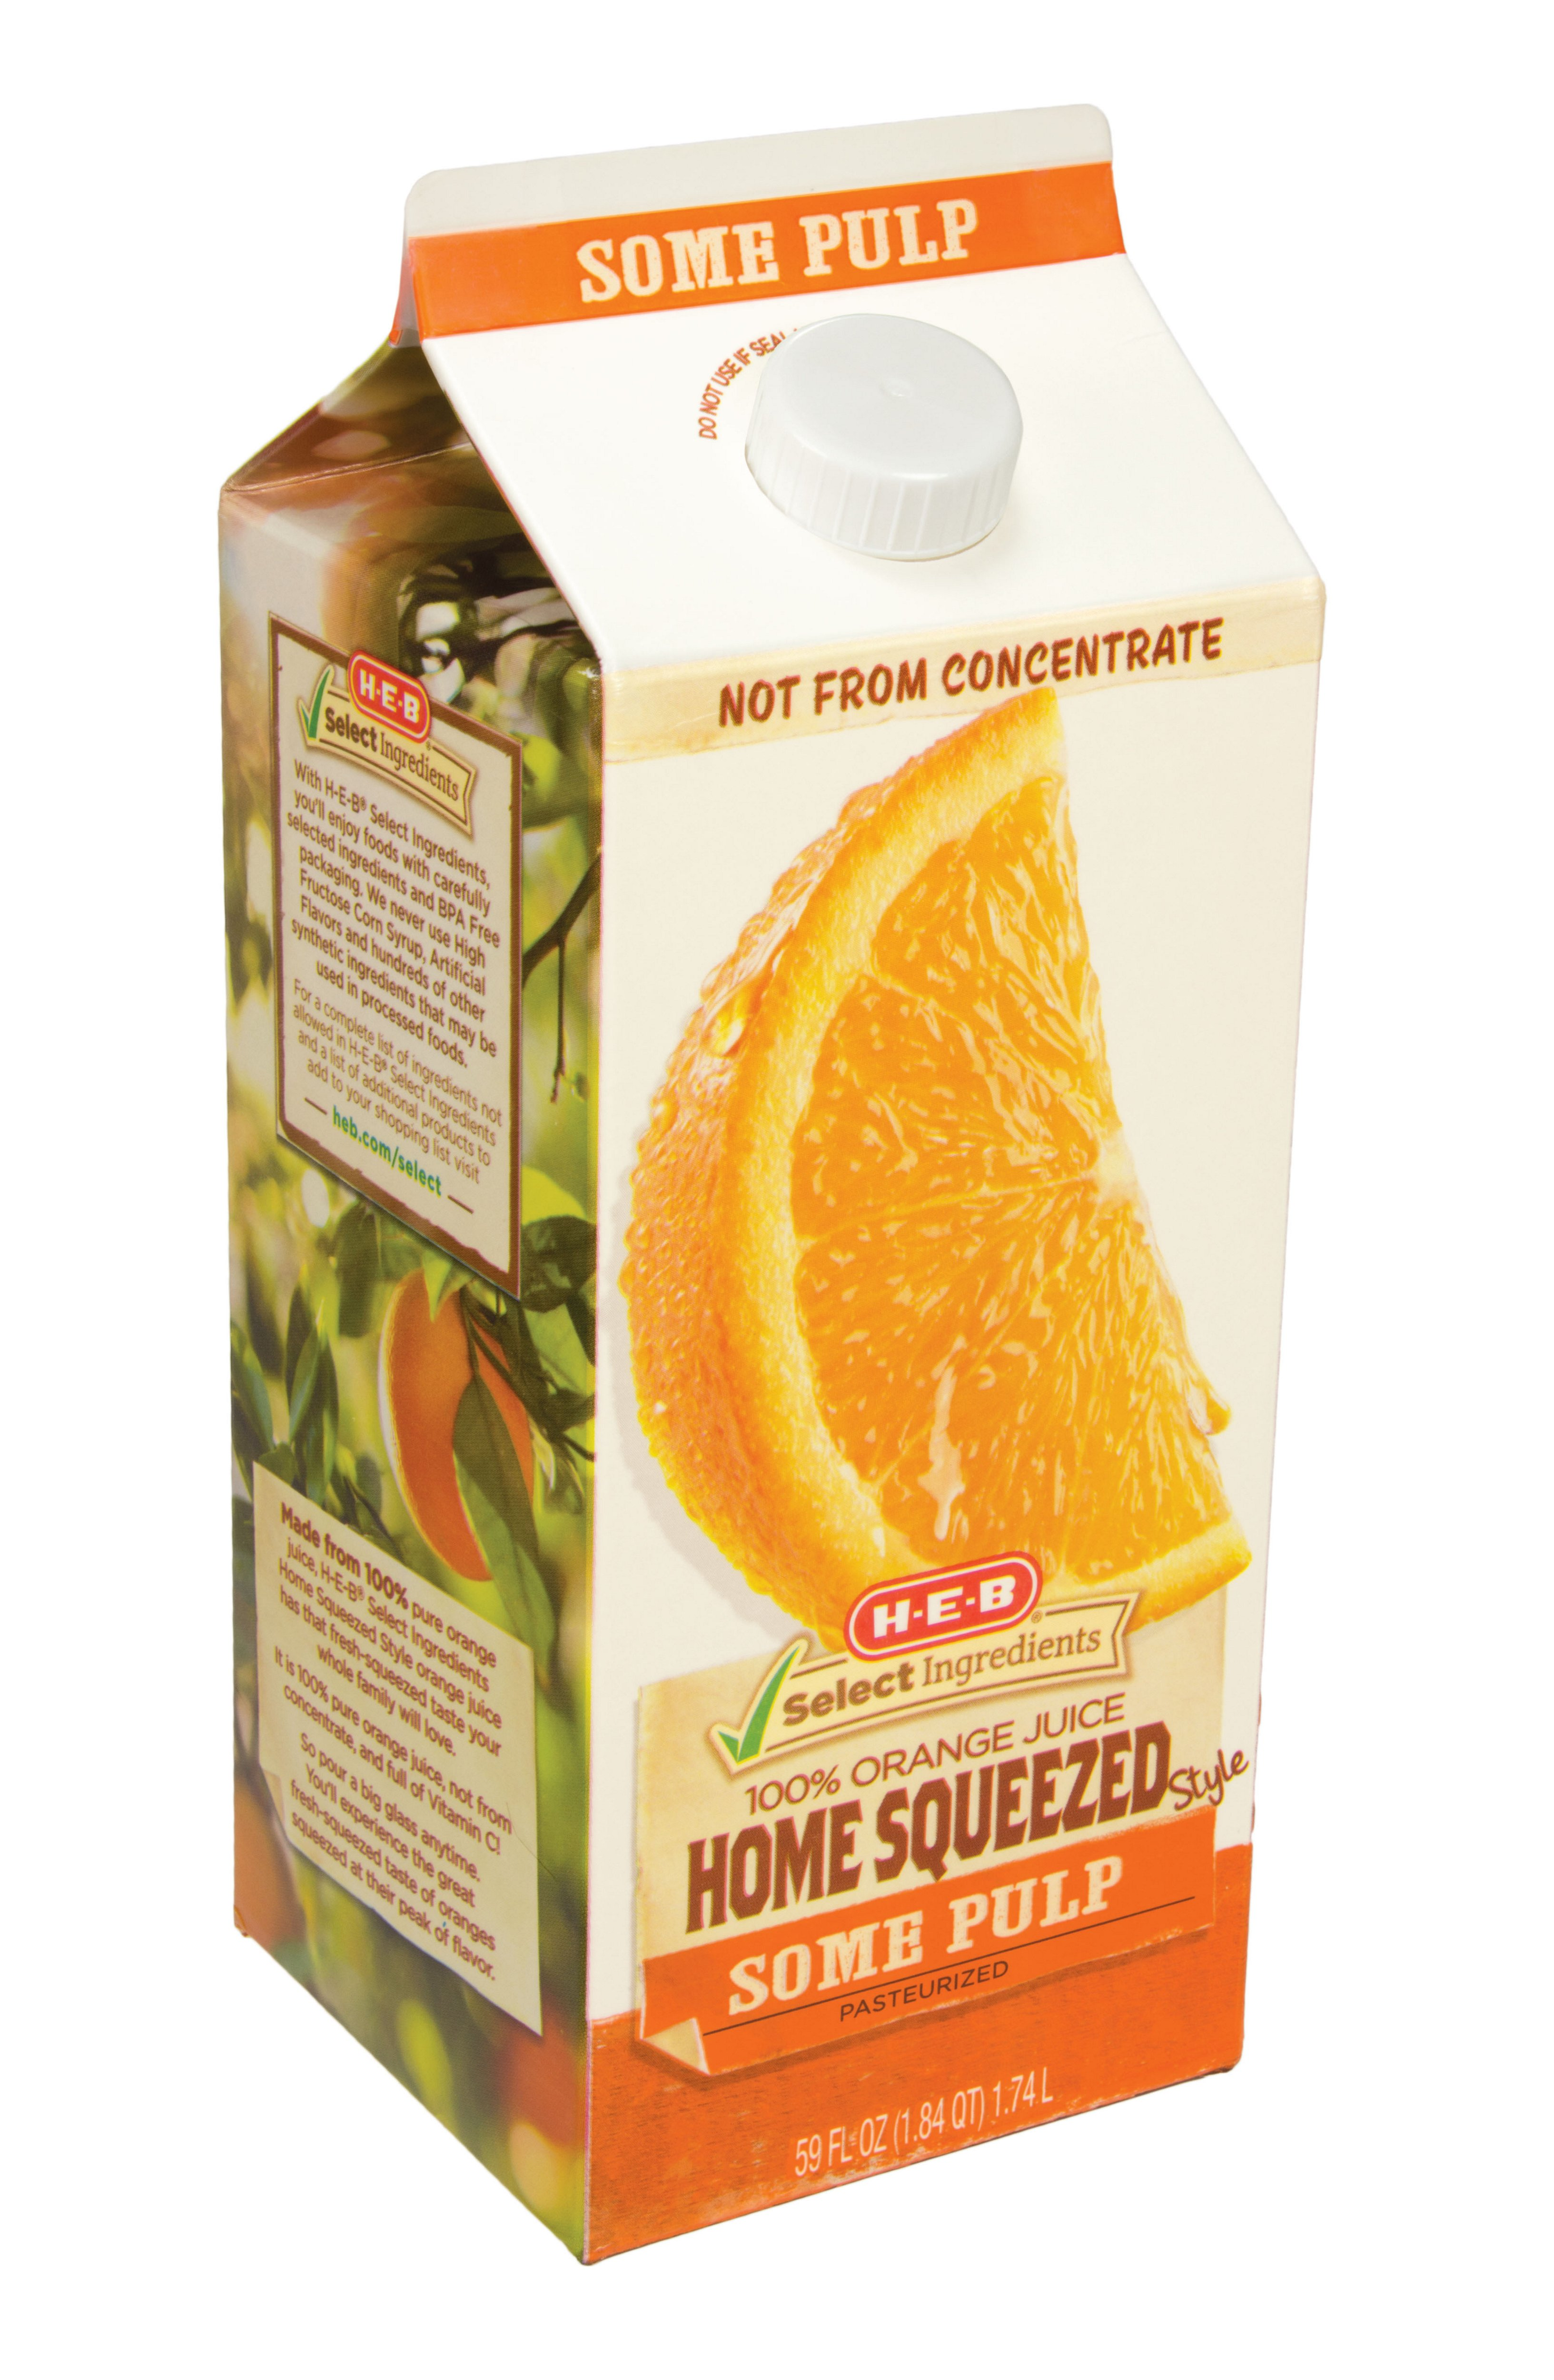 h e b select ingredients home squeezed some pulp orange juice shop